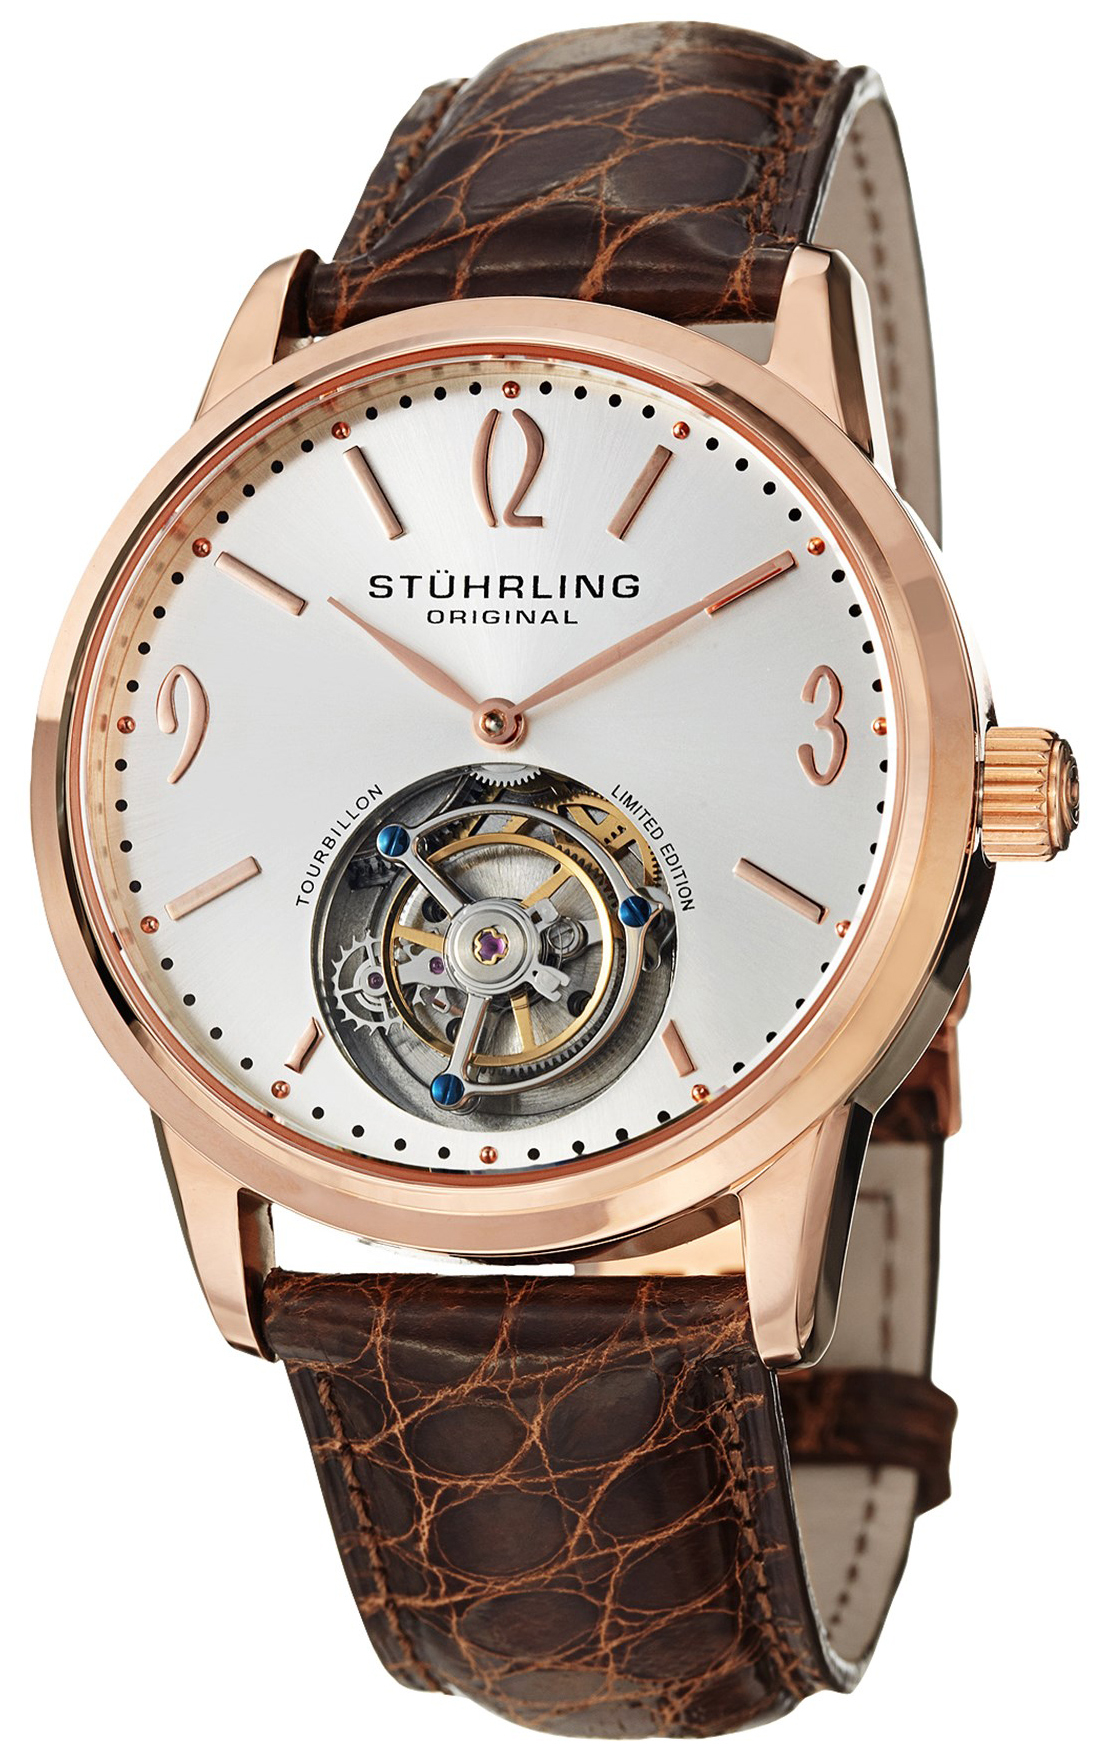 Stührling Original Tourbillon Herreklokke 542.334XK2 - Stührling Original